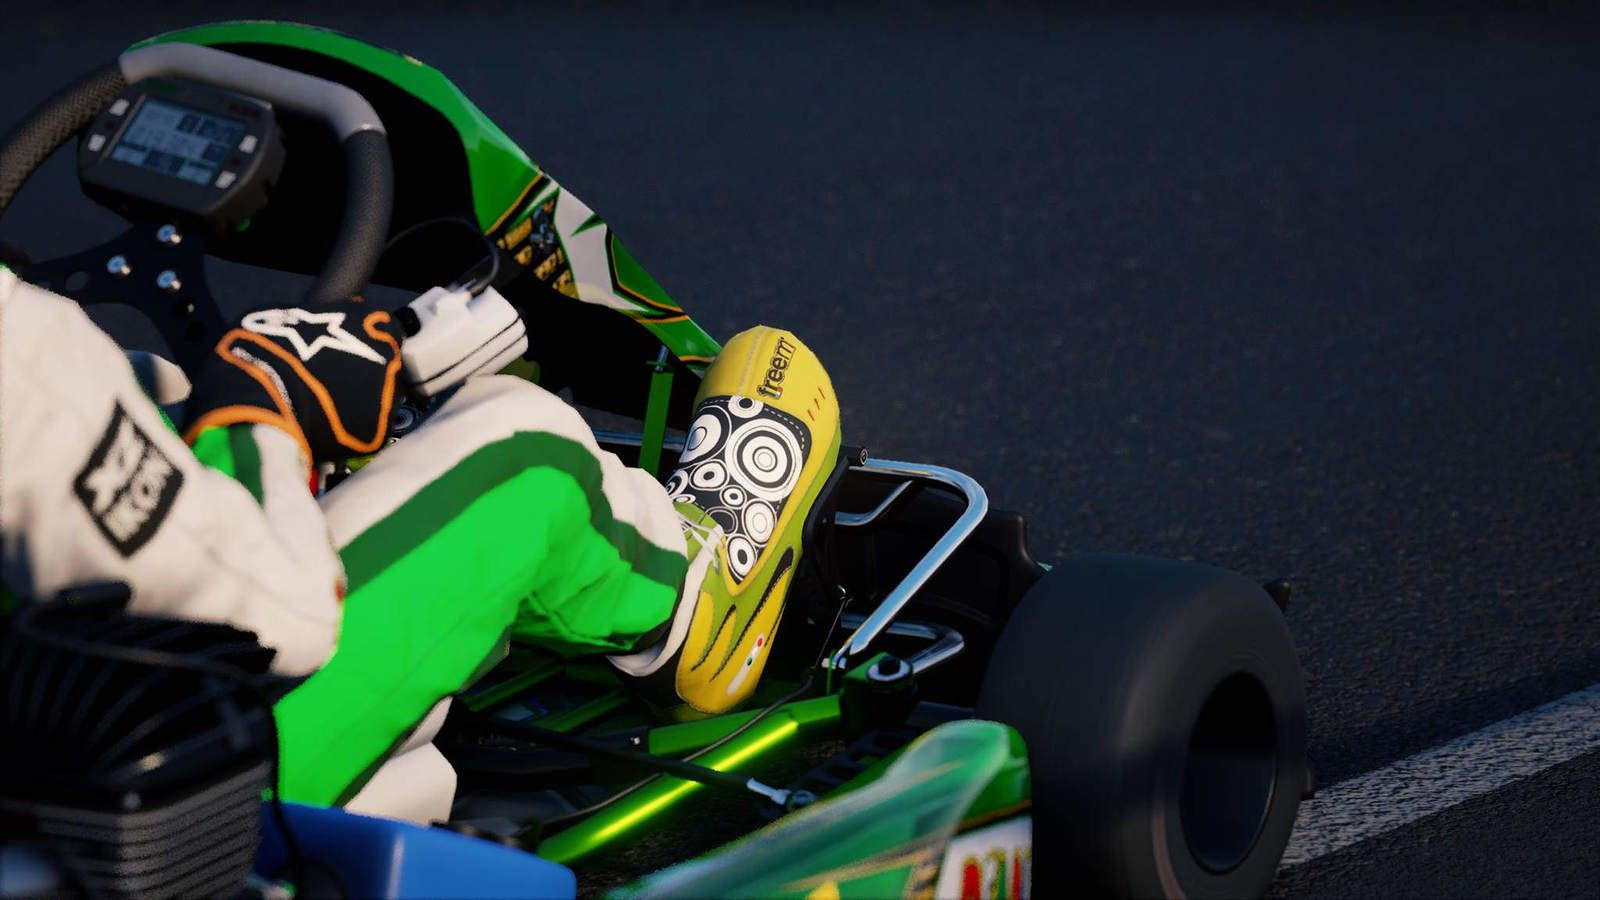 KartKraft : nouvelles images de la version Beta